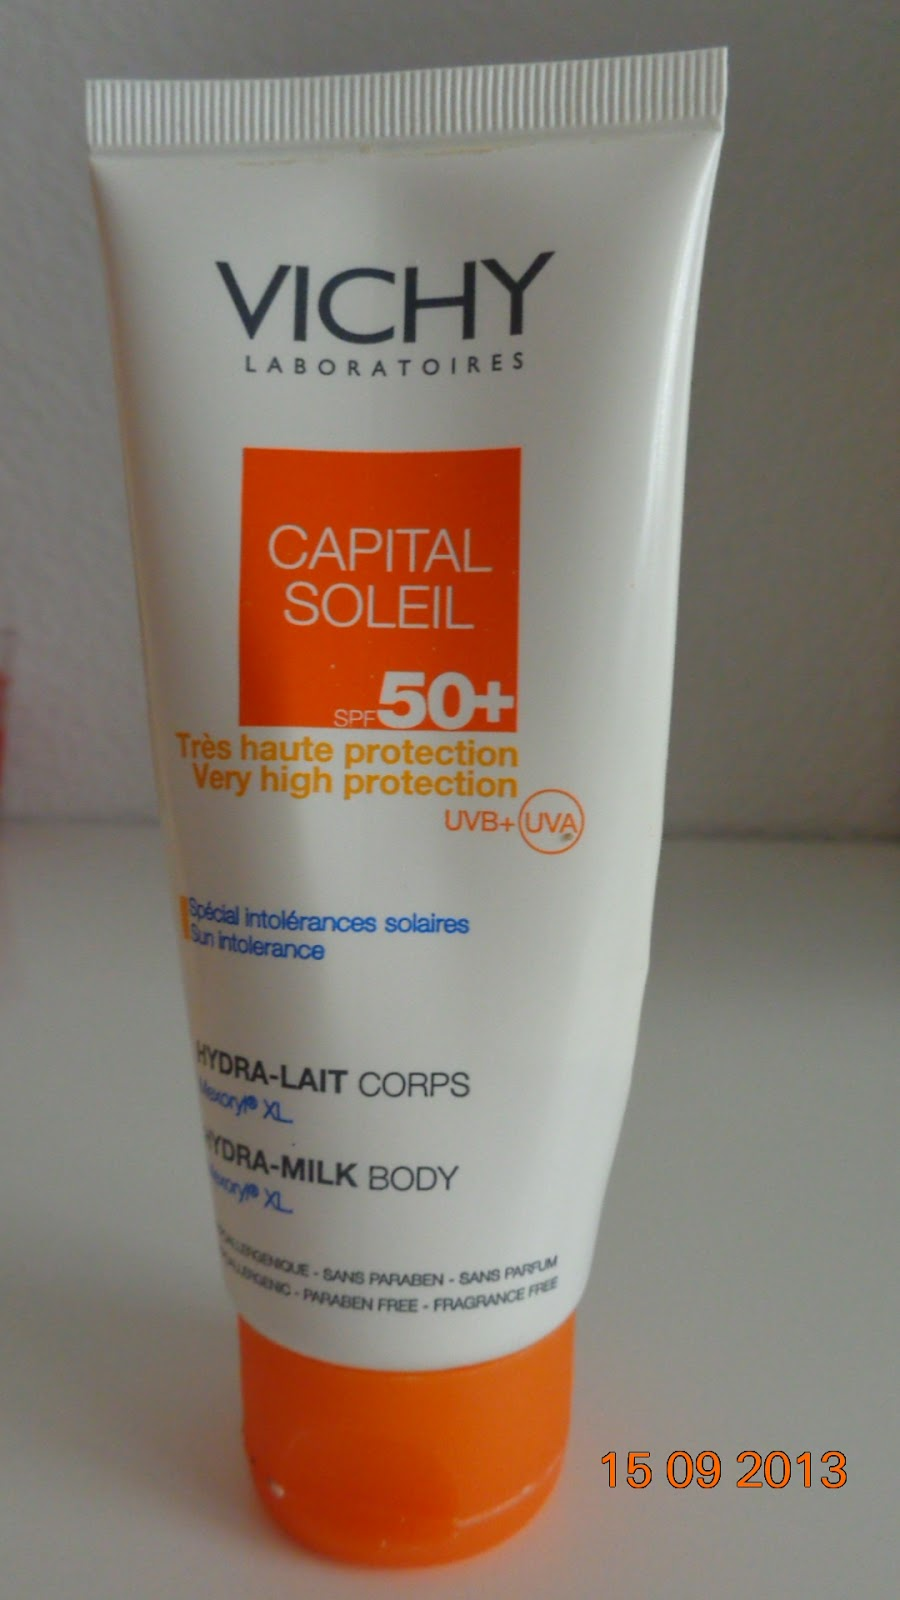 Vichy Capital Soleil SPF50+ hydra-milk body